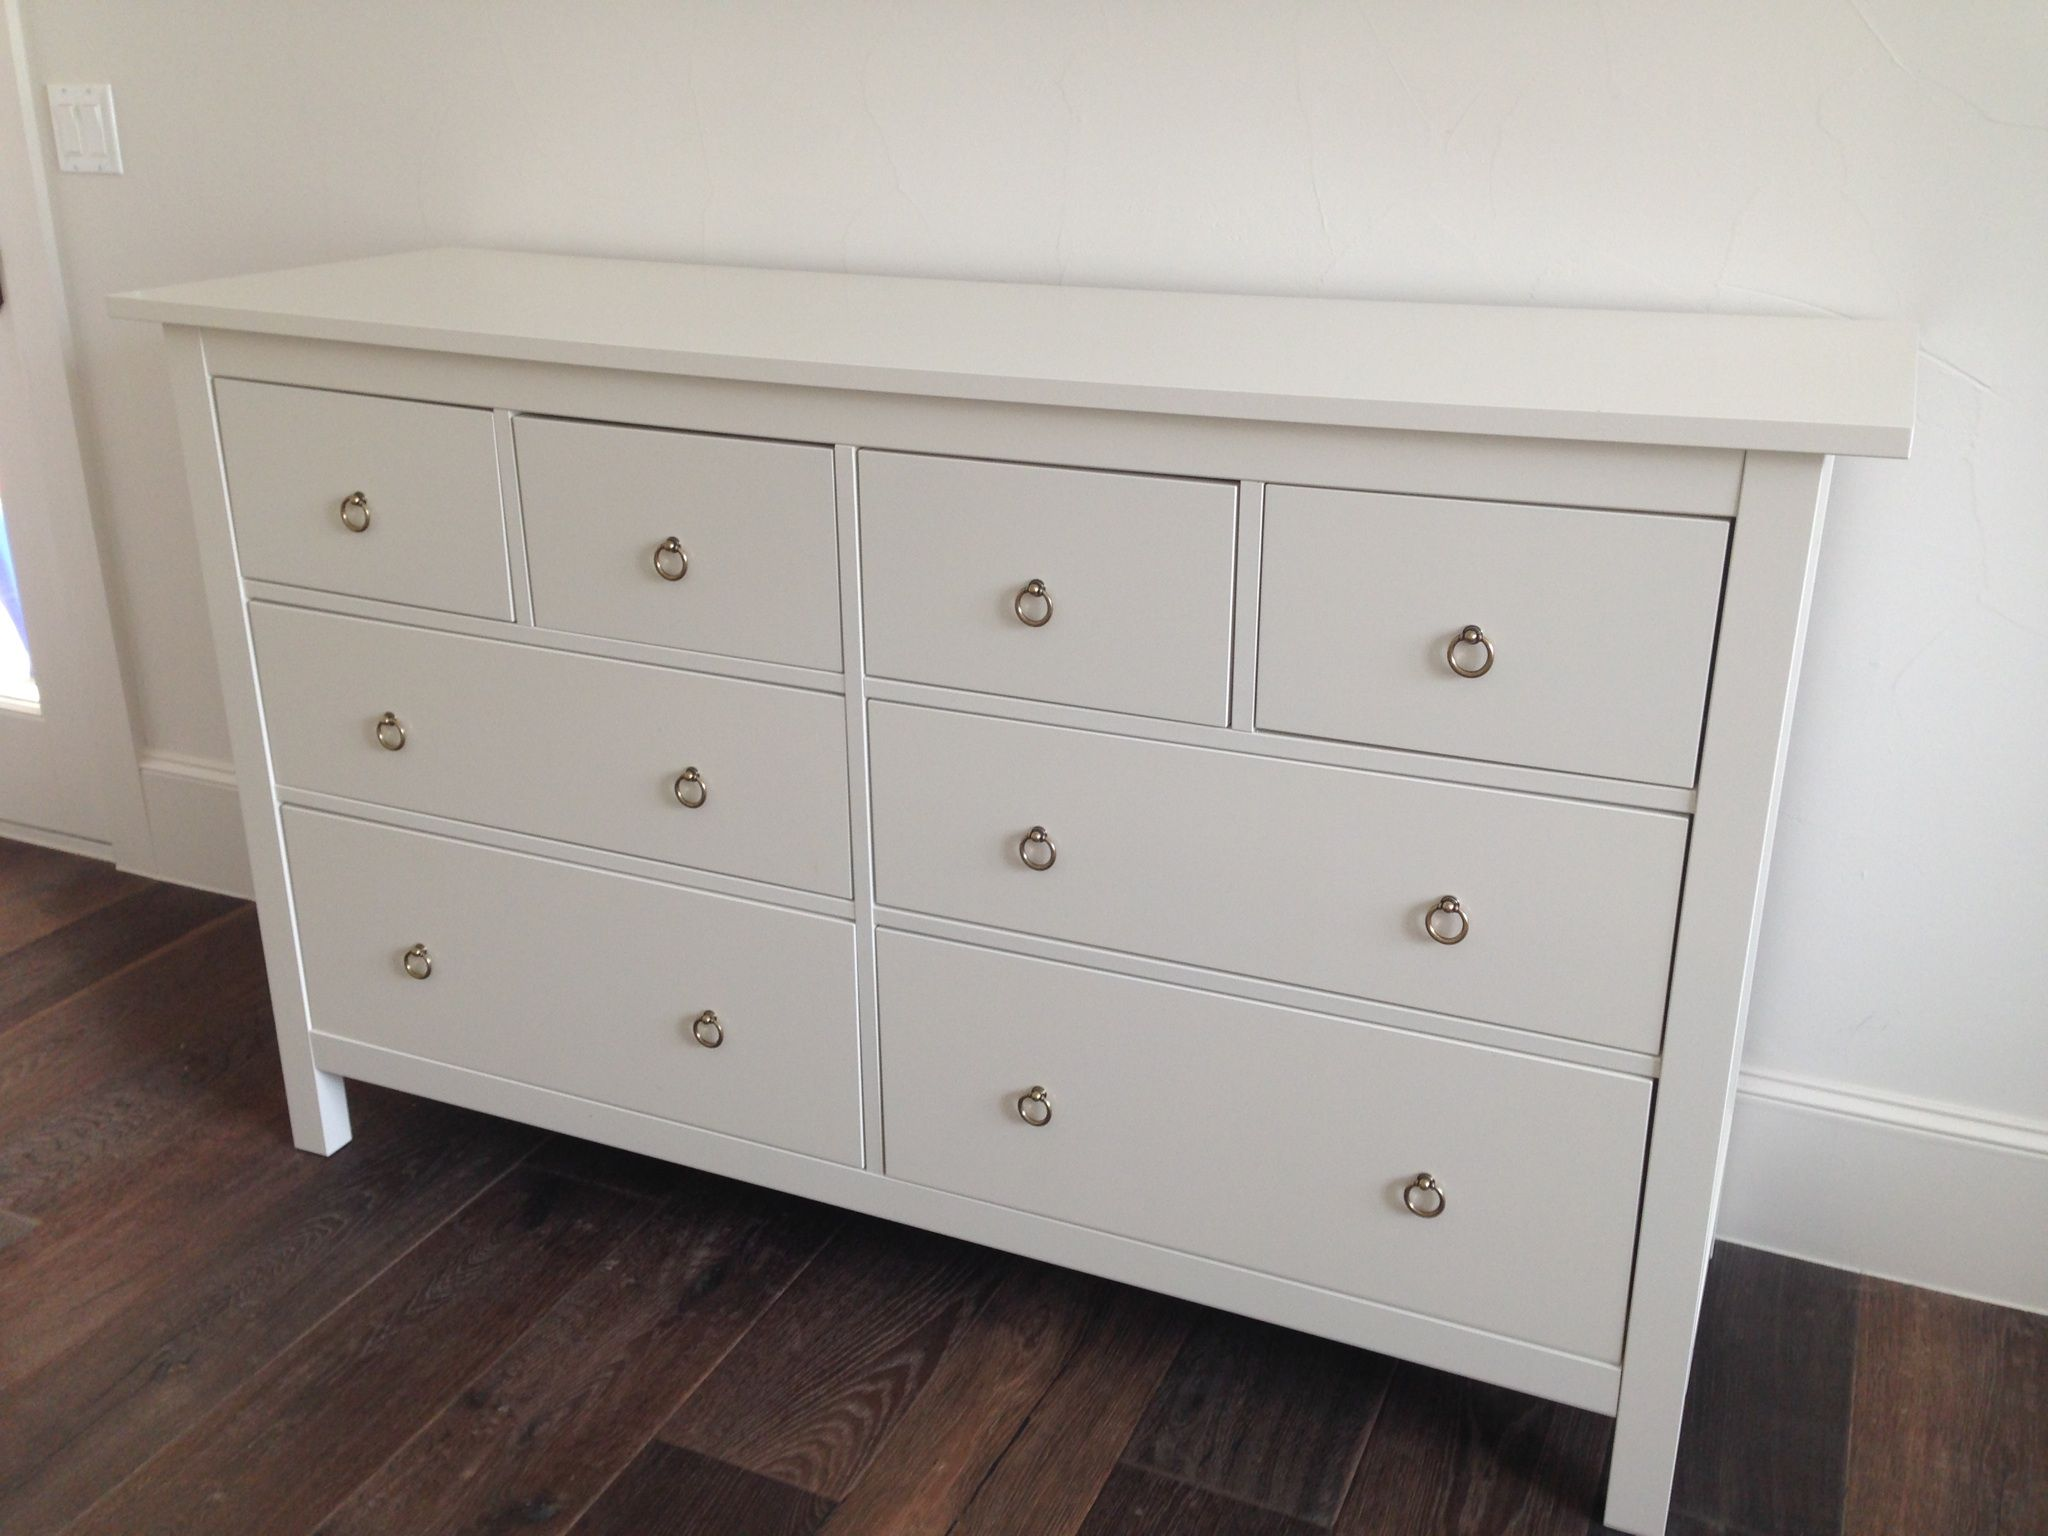 Ikea Hemnes dresser with gold ring pulls | For Nat | Pinterest ...